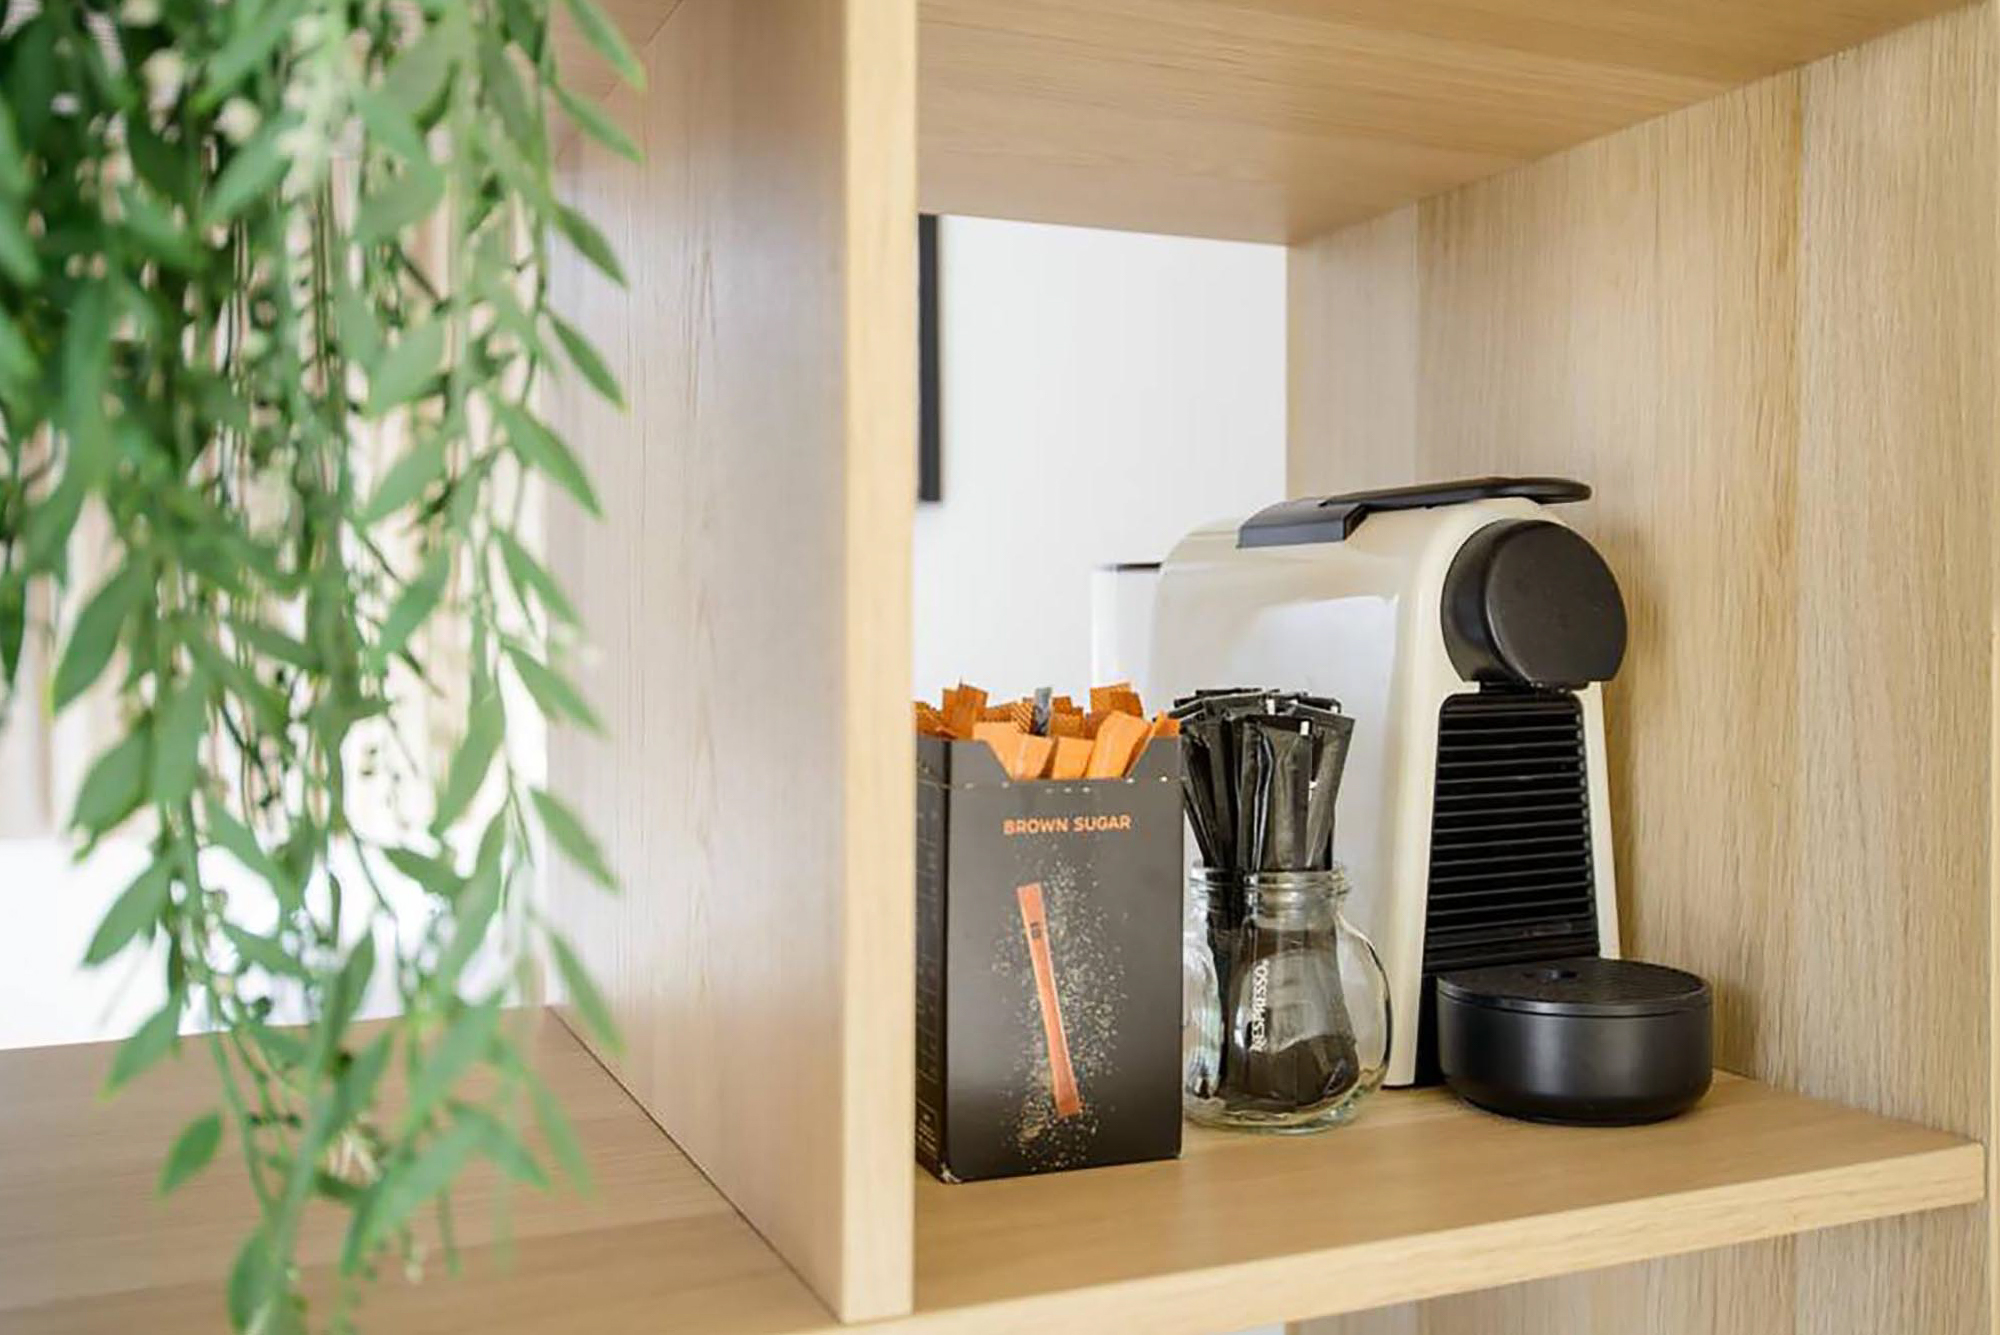 White Nespresso machine in a wood library with a plant decoration on the left side.